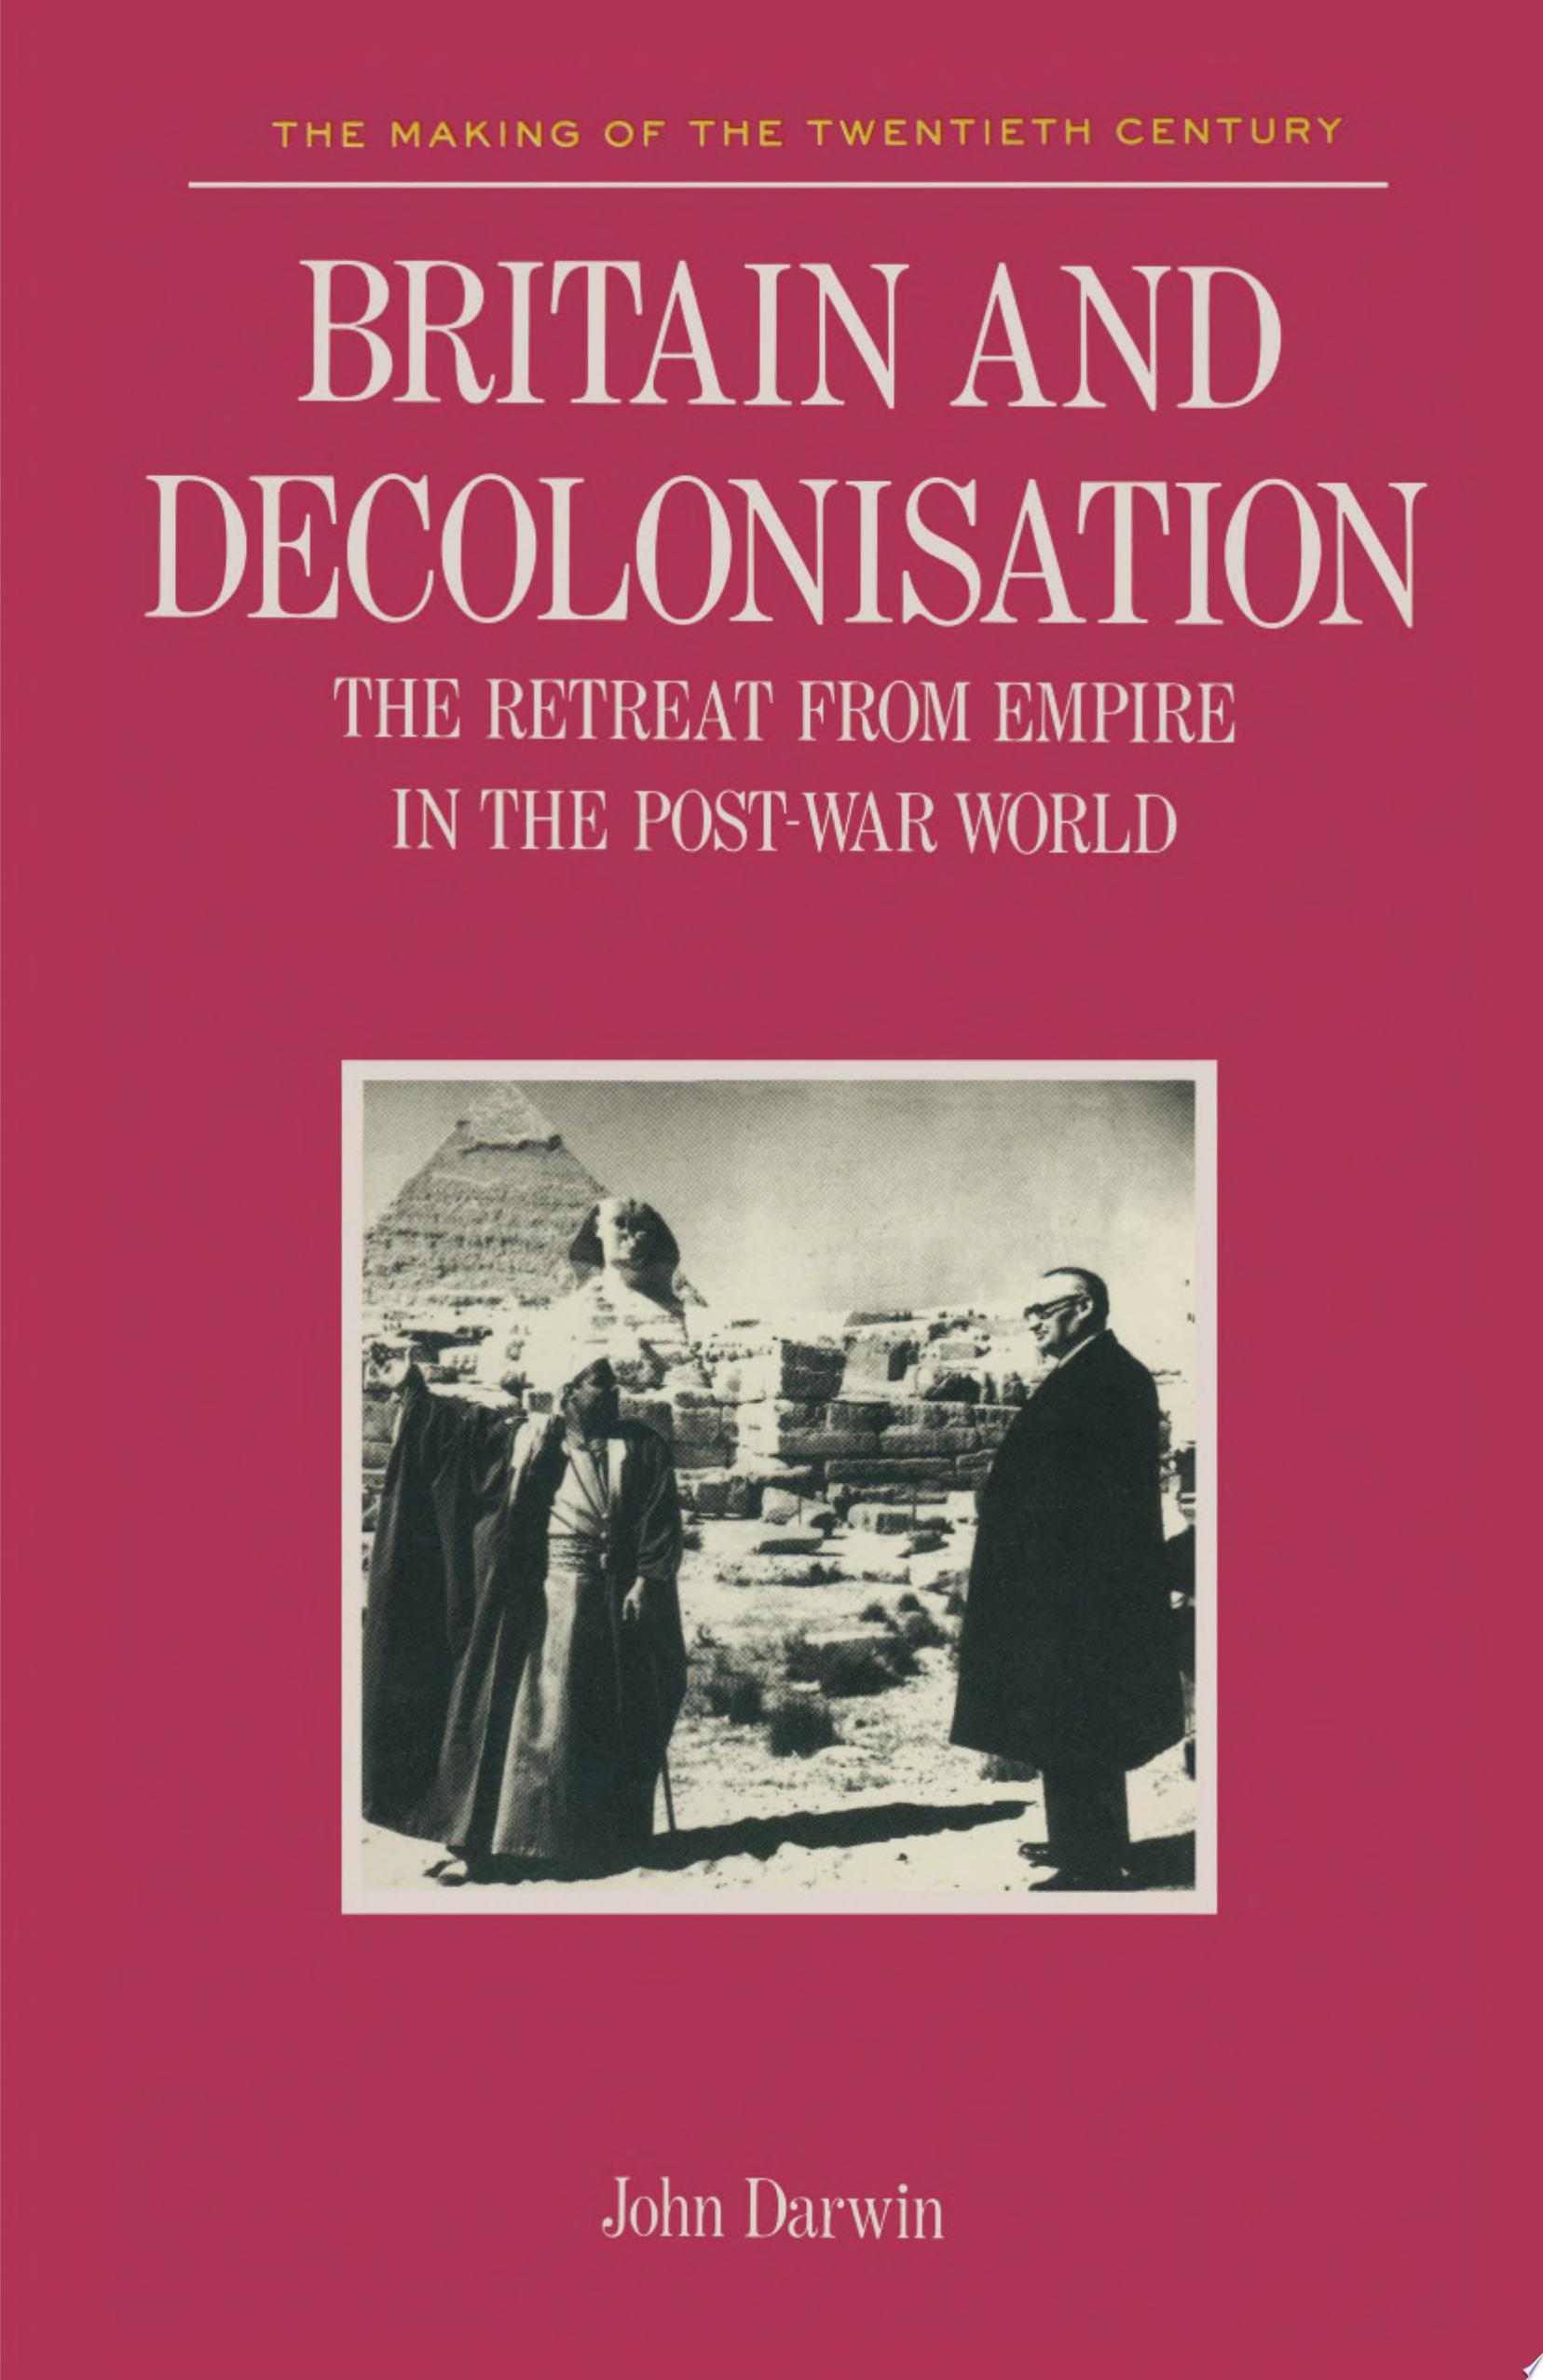 Britain and Decolonisation